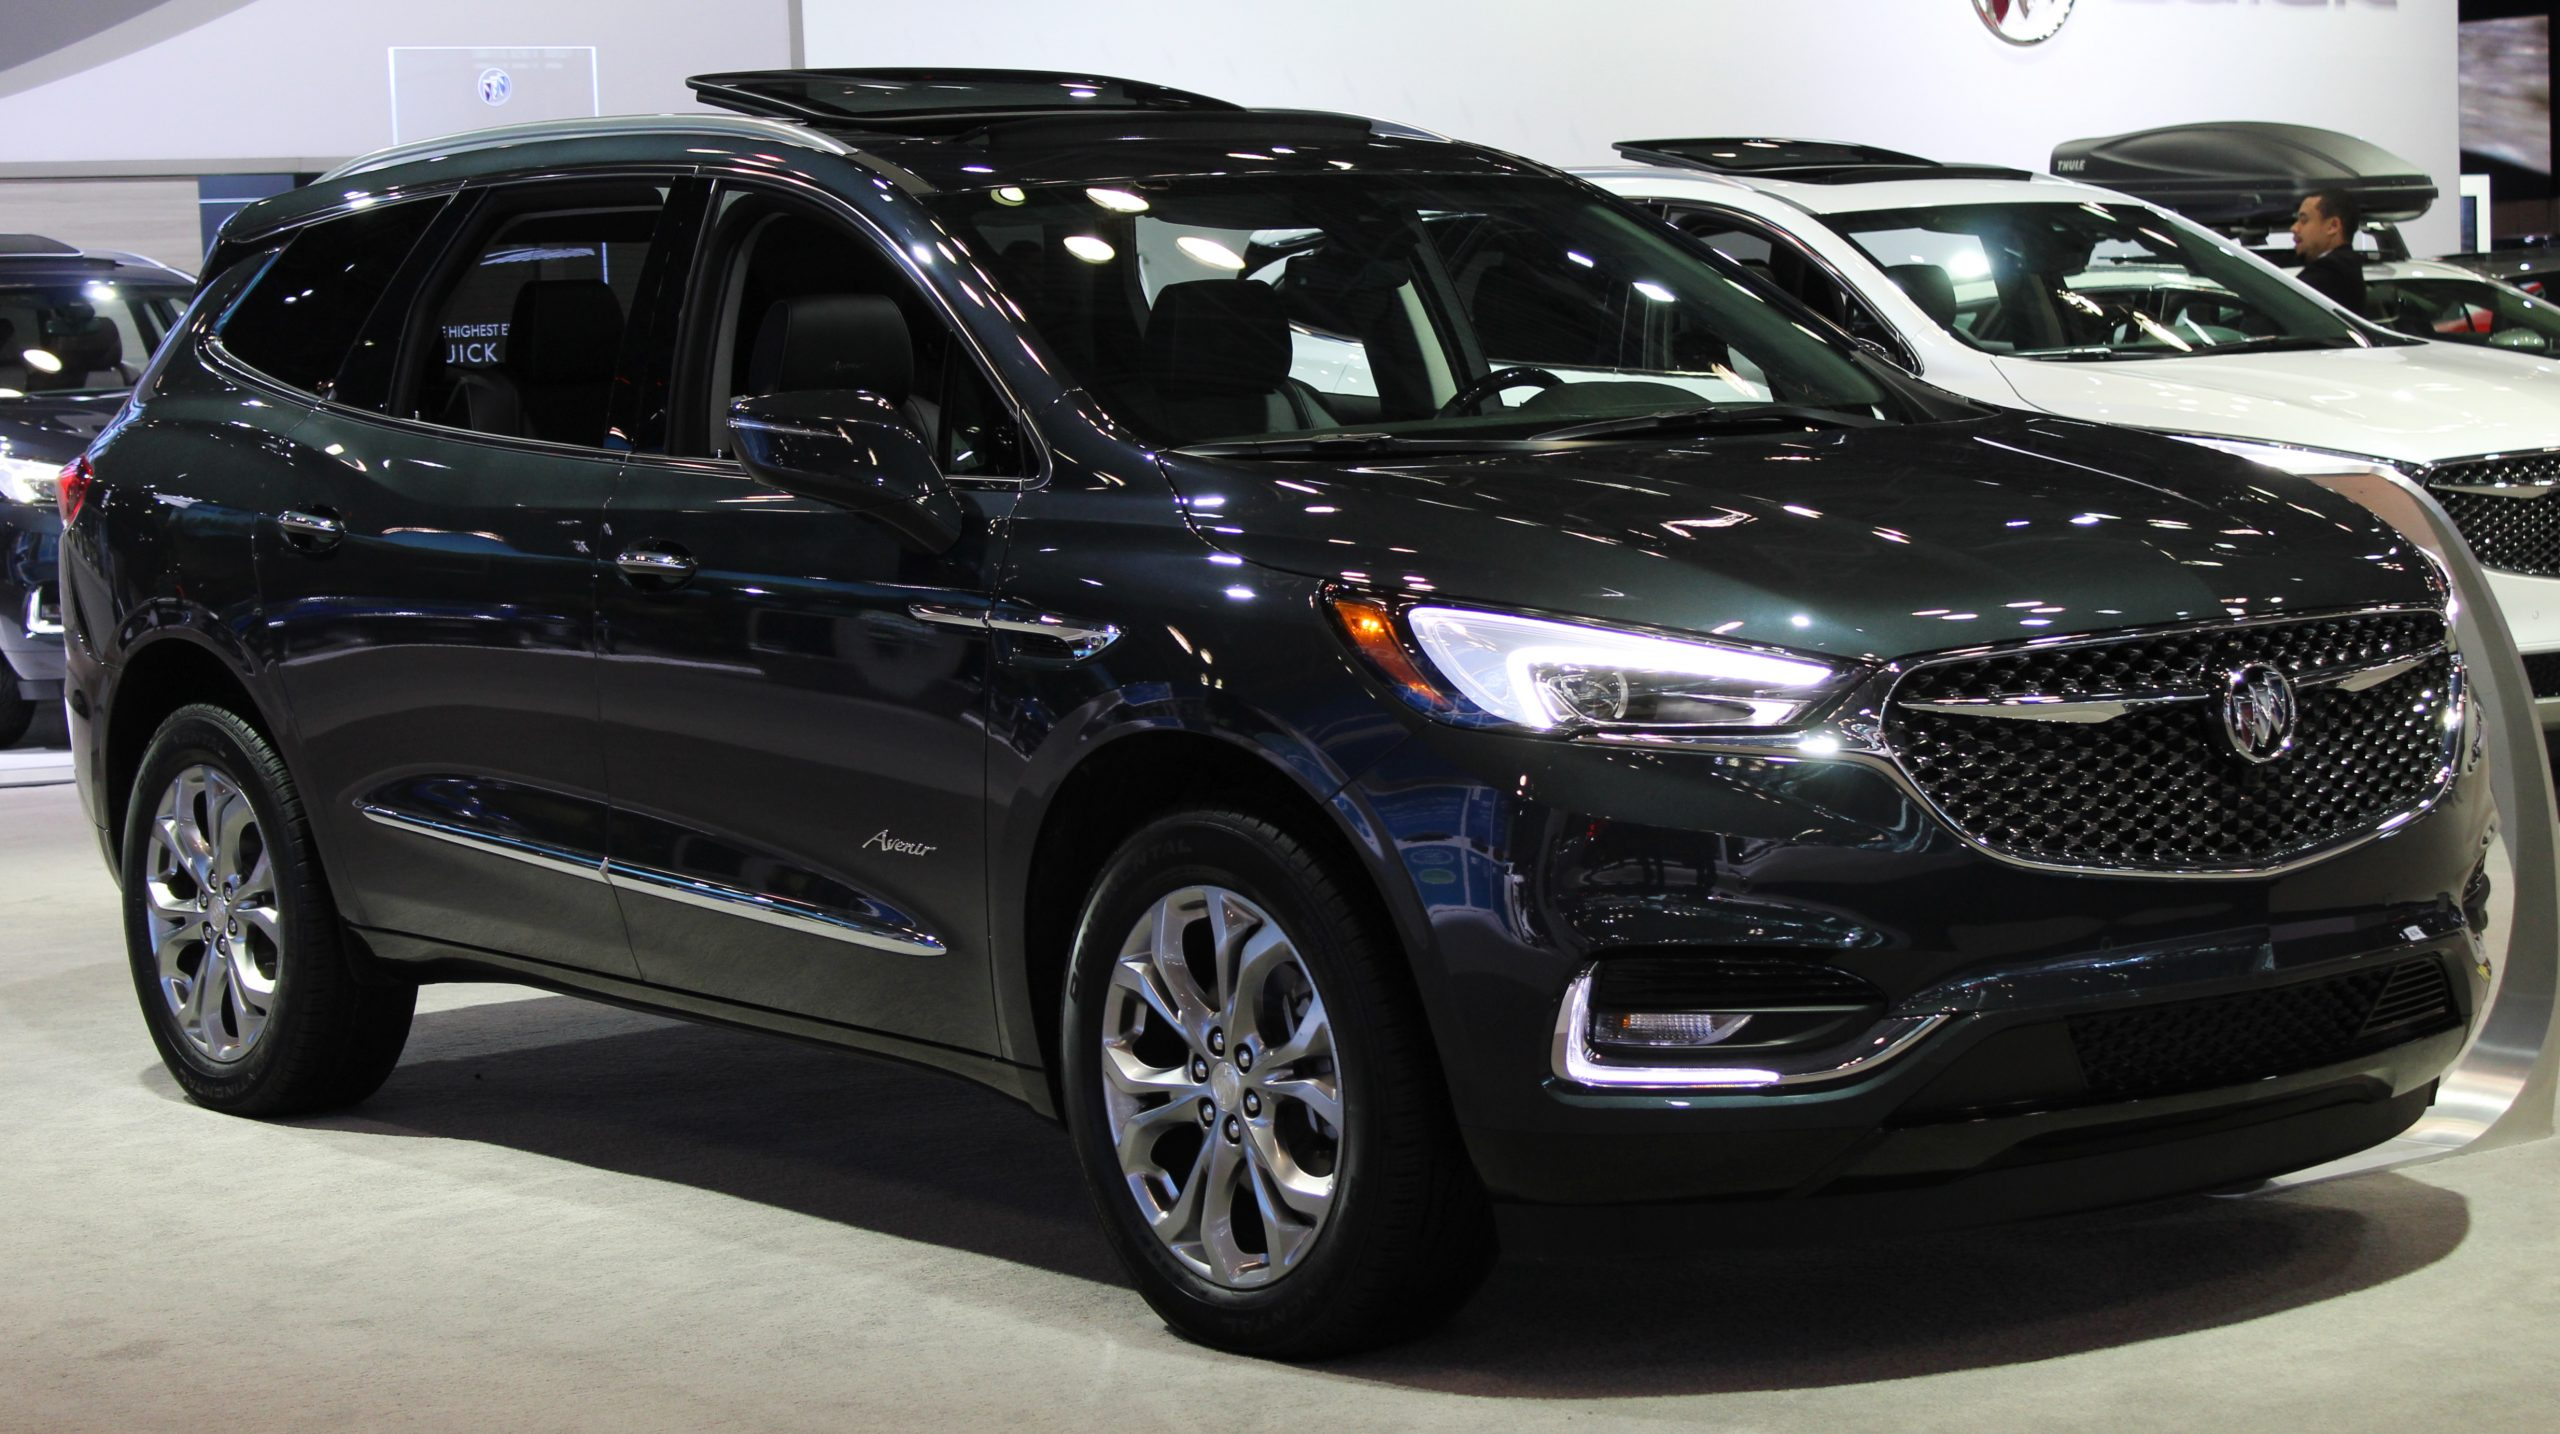 Buick Enclave - Wikipedia New 2022 Buick Envision Ground Clearance, Gas Mileage, Horsepower